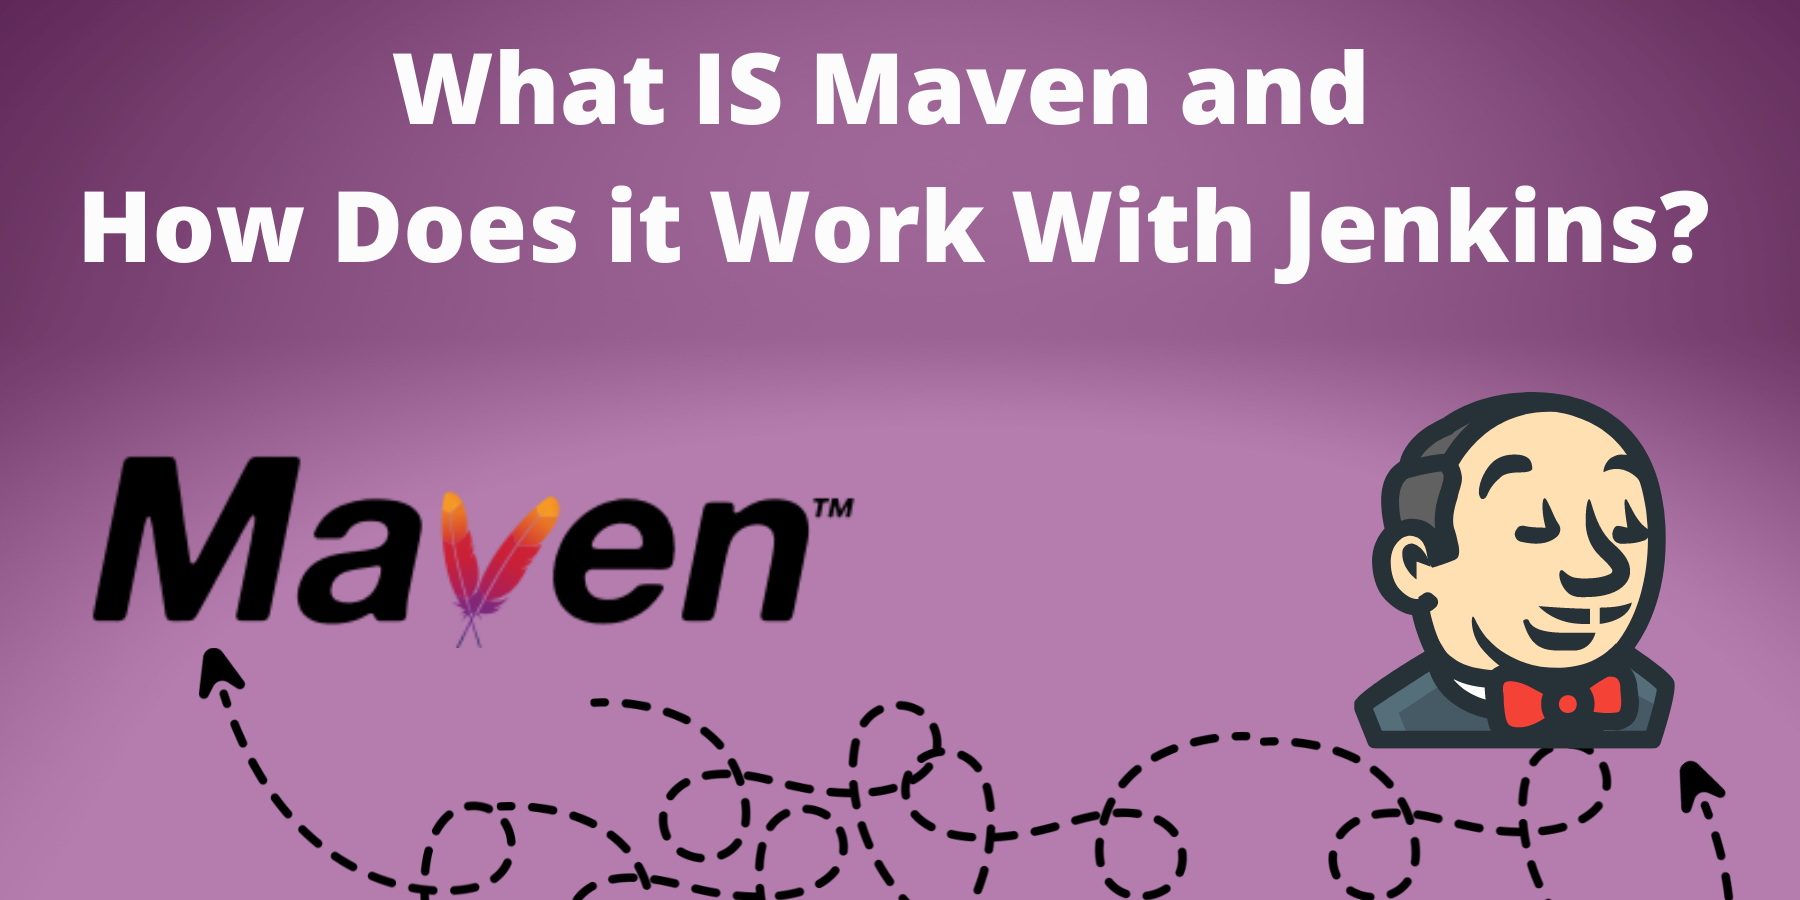 What is Maven and How Does it Work With Jenkins?